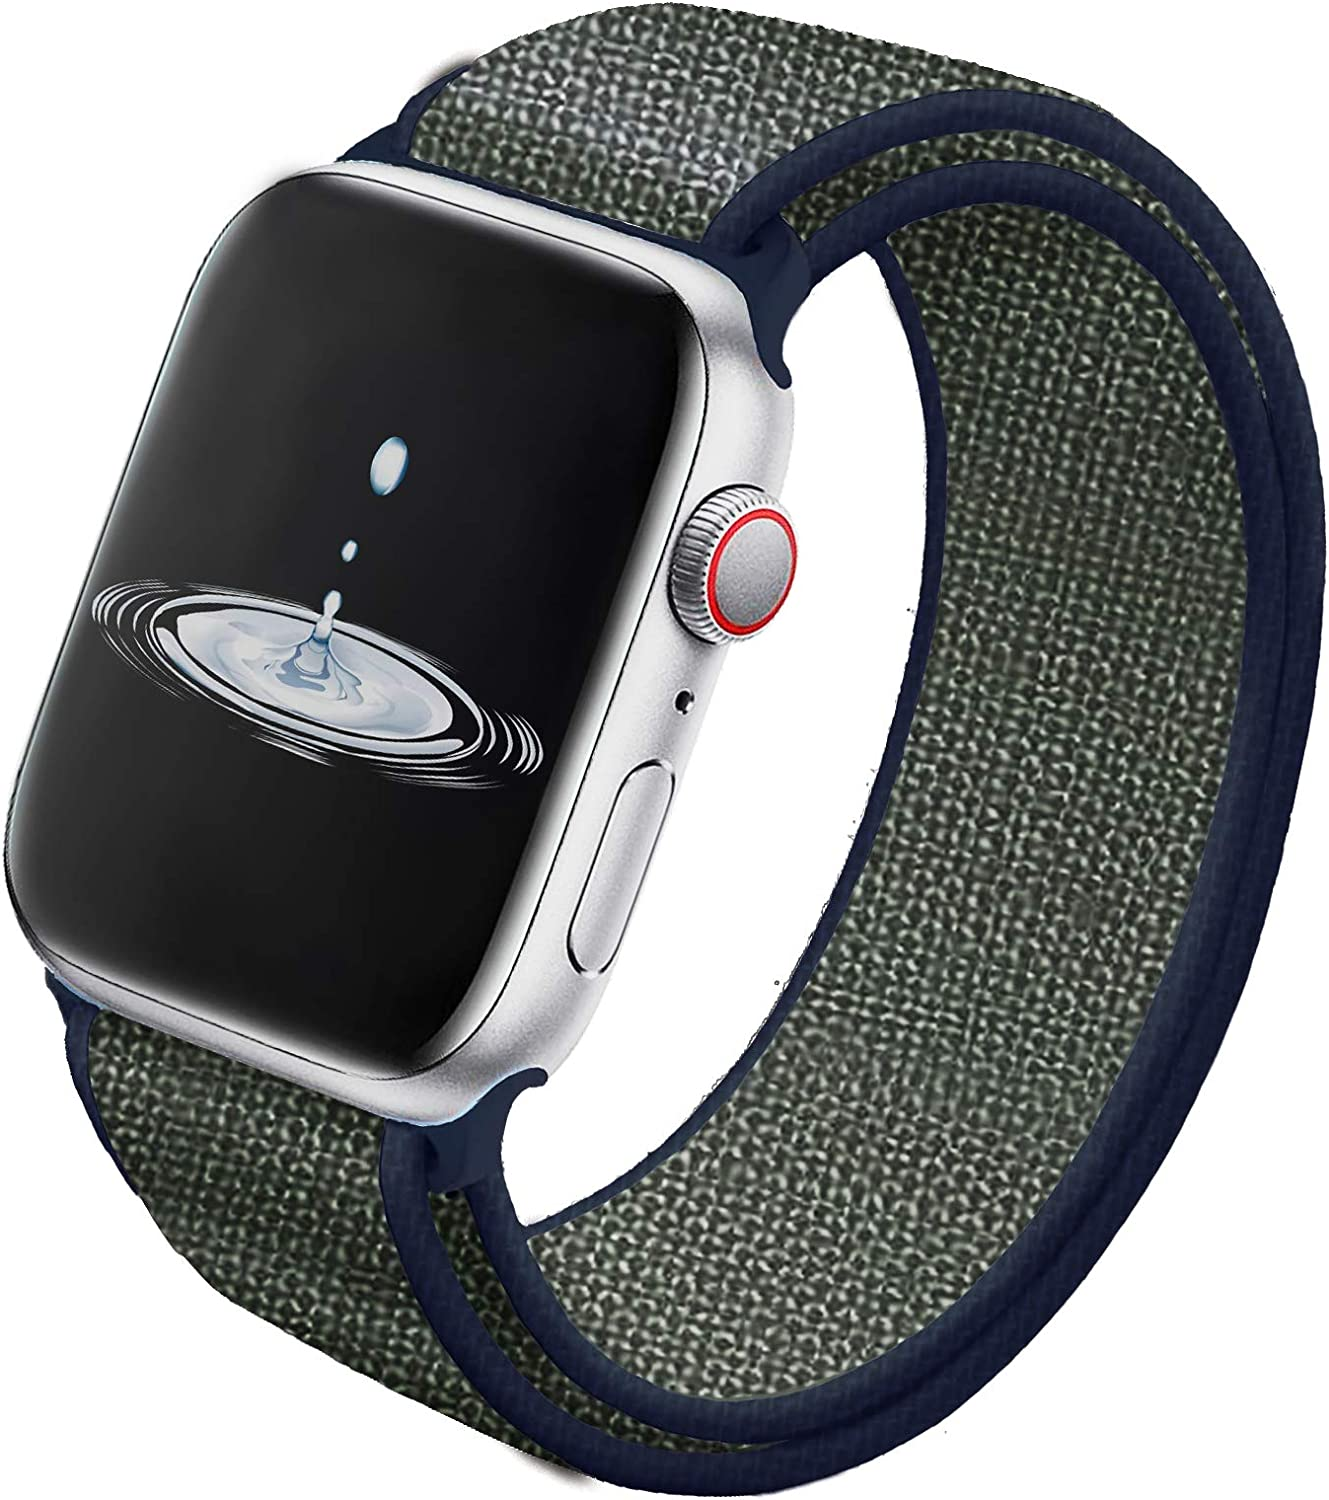 HooQer Watch Band Compatible with for Apple Watch Band 38mm 40mm 42mm 44mm Soft Lightweight Breathable Nylon Replacement Band for Watch Series 5 4 3 2 1